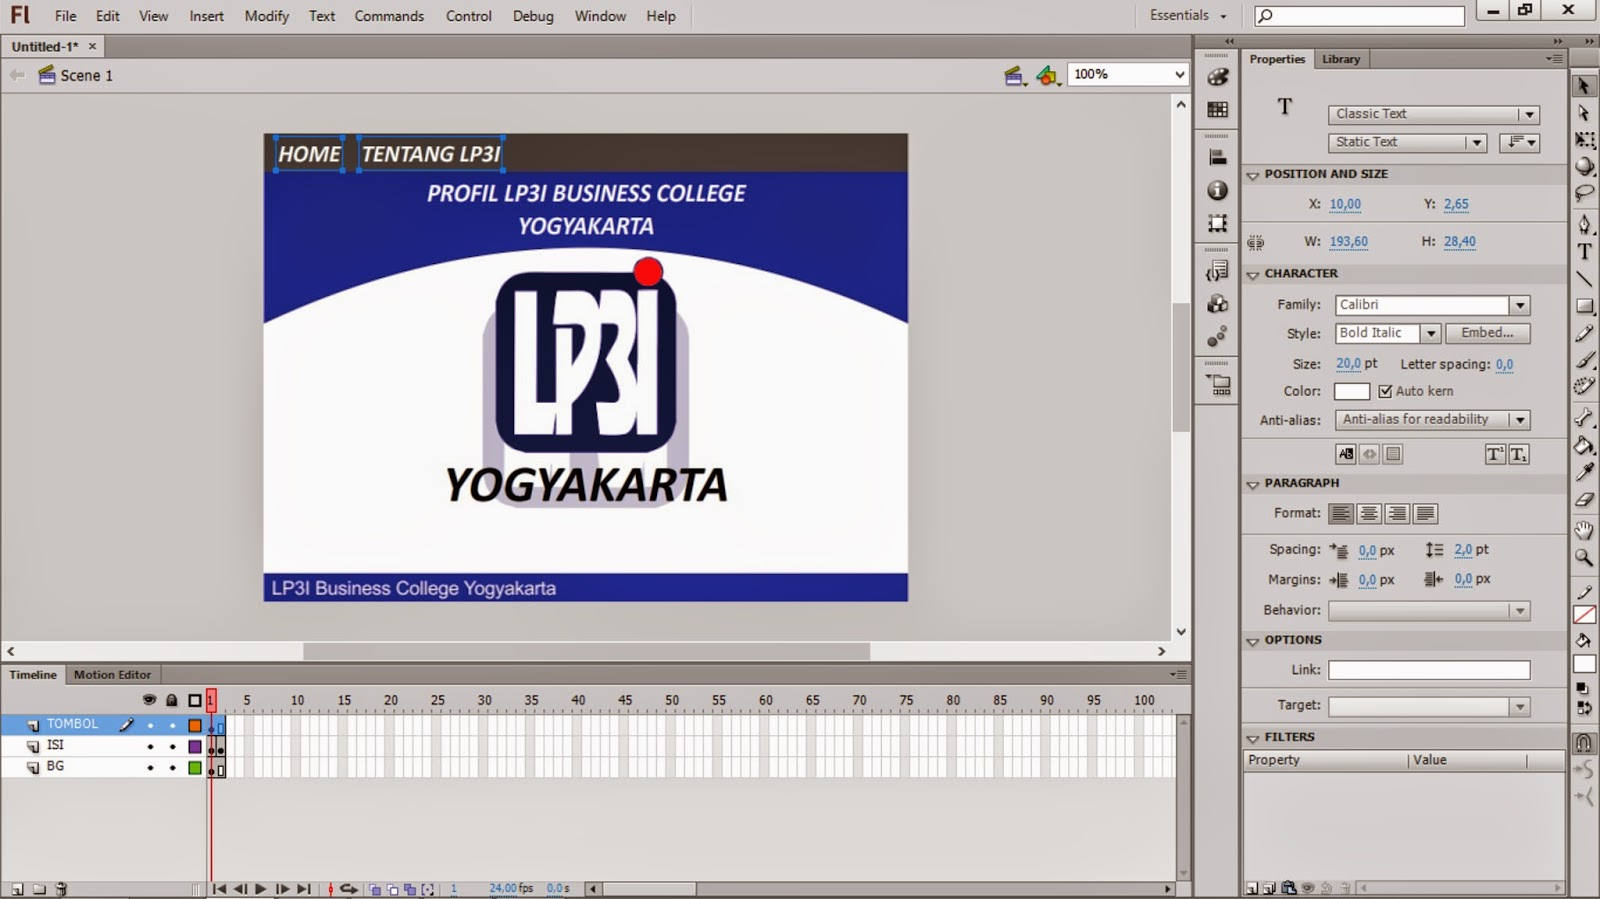 Membuat Company Profile Sederhana Dengan Adobe Flash Cs 6 Terus